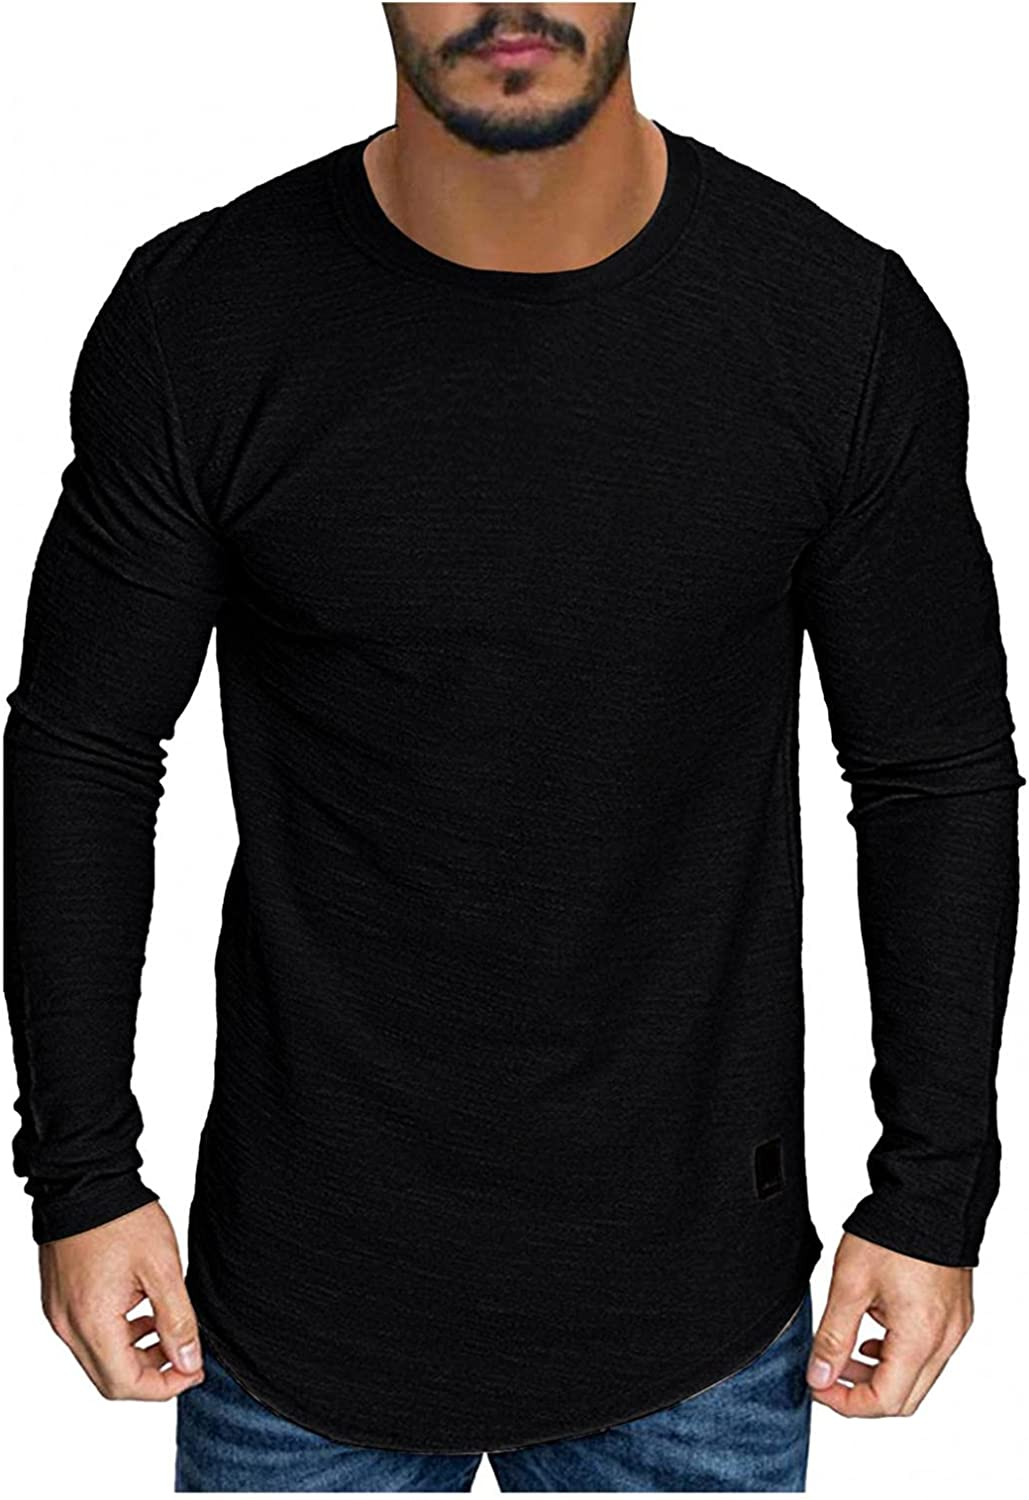 Long Sleeve Tee Shirts for Men Dry Fit Work Tops Casual Basic Solid Color to wear with Jacket Blouse